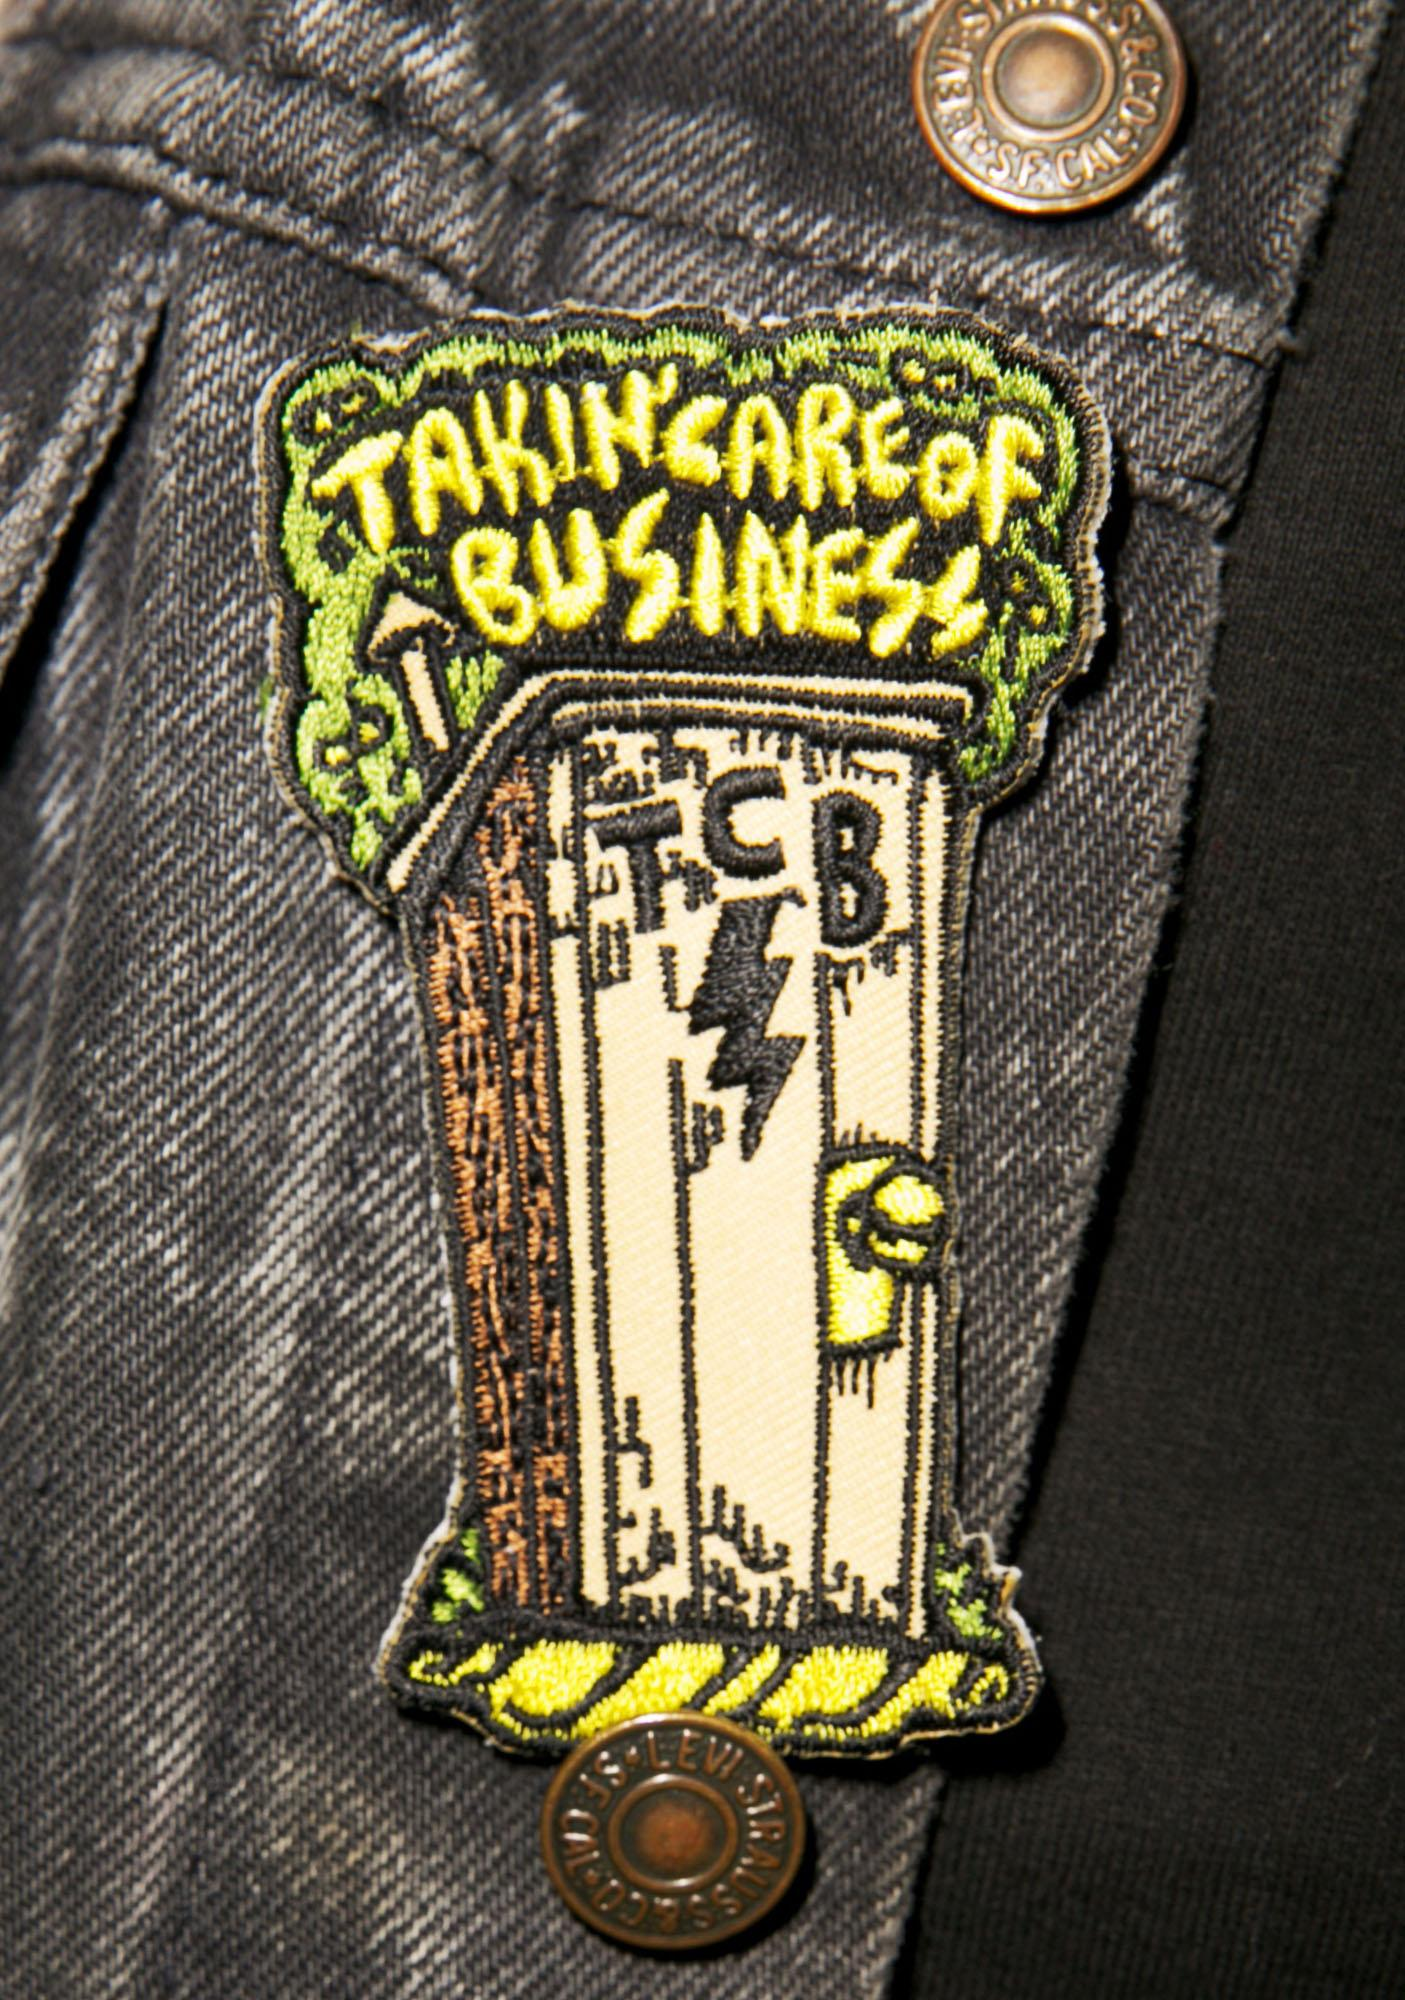 Takin' Care of Business Patch